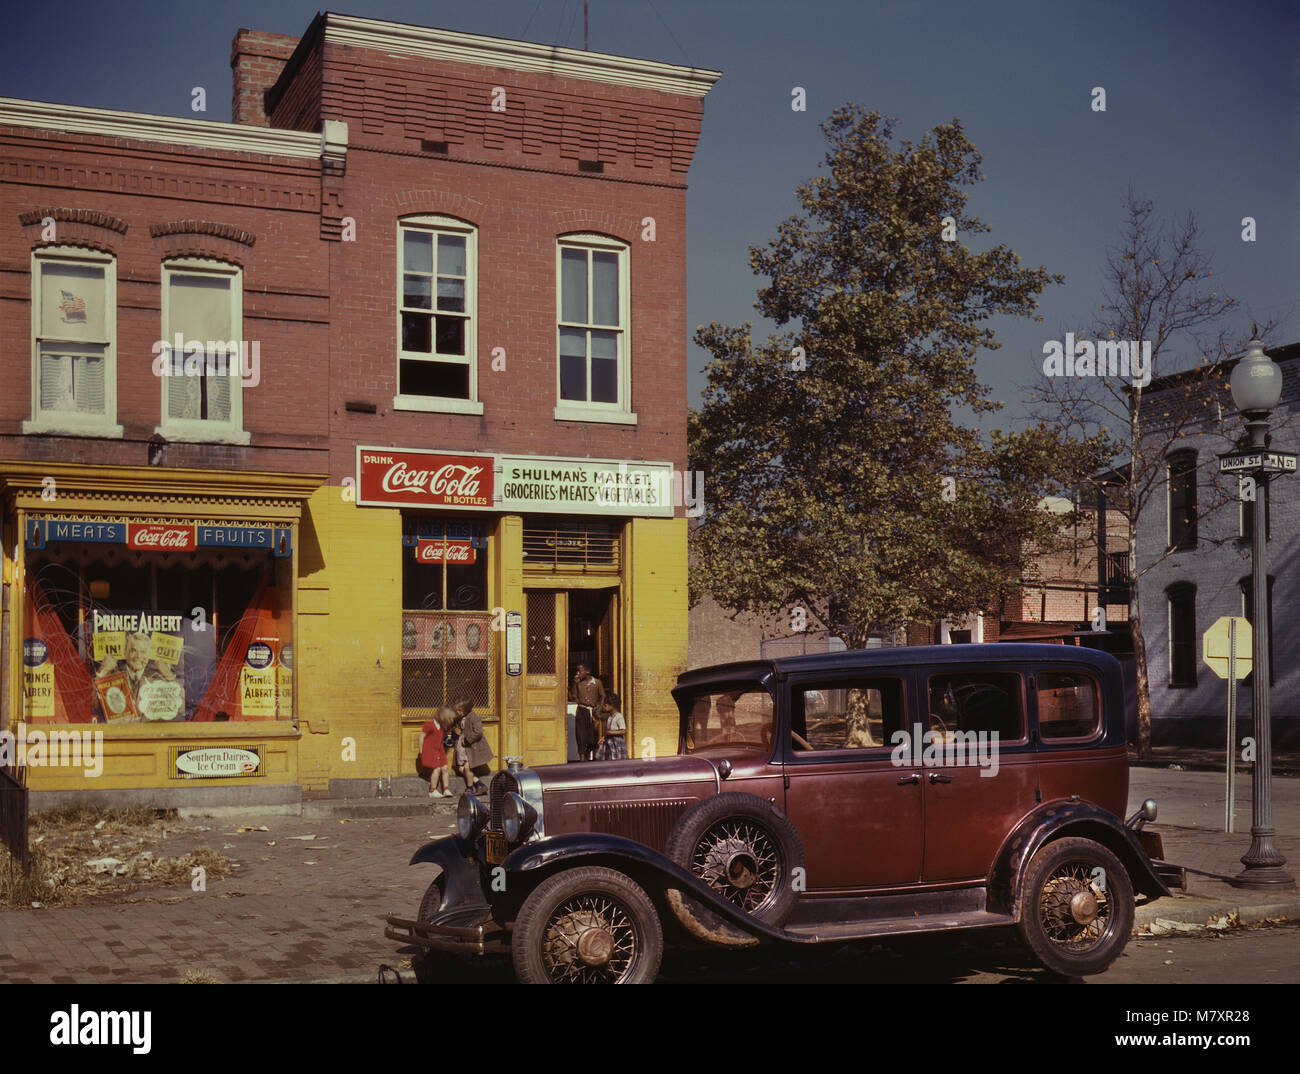 Shulman's Market, Southeast Corner of N Street and Union Street SW, Washington DC, USA, early 1940's, Louise - Stock Image